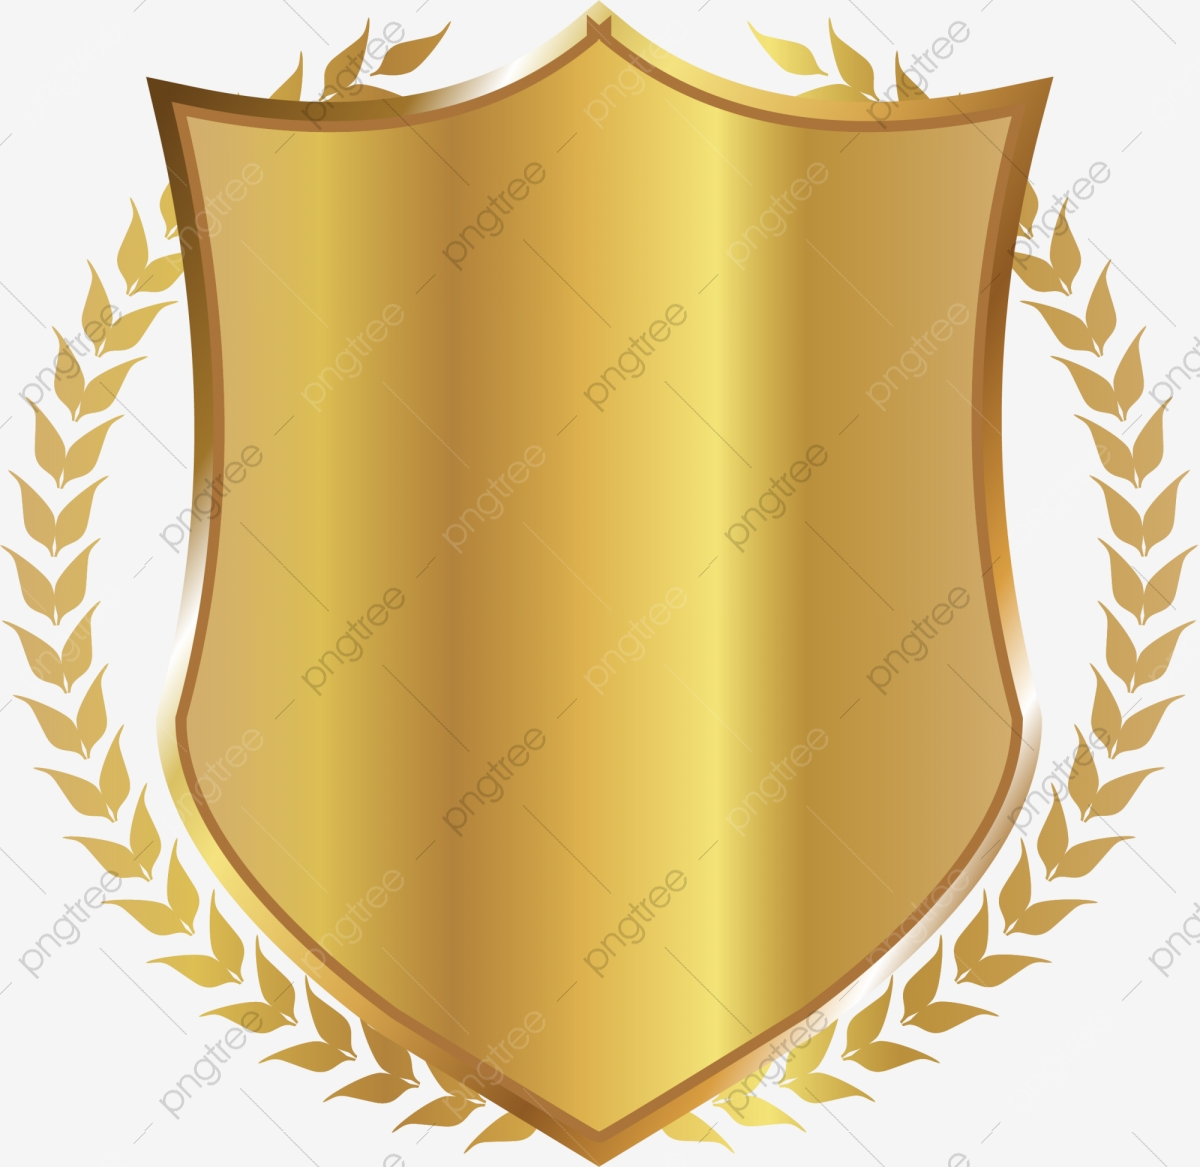 Golden Shield Rice, Shield Clipart, Rice Clipart, Golden PNG.